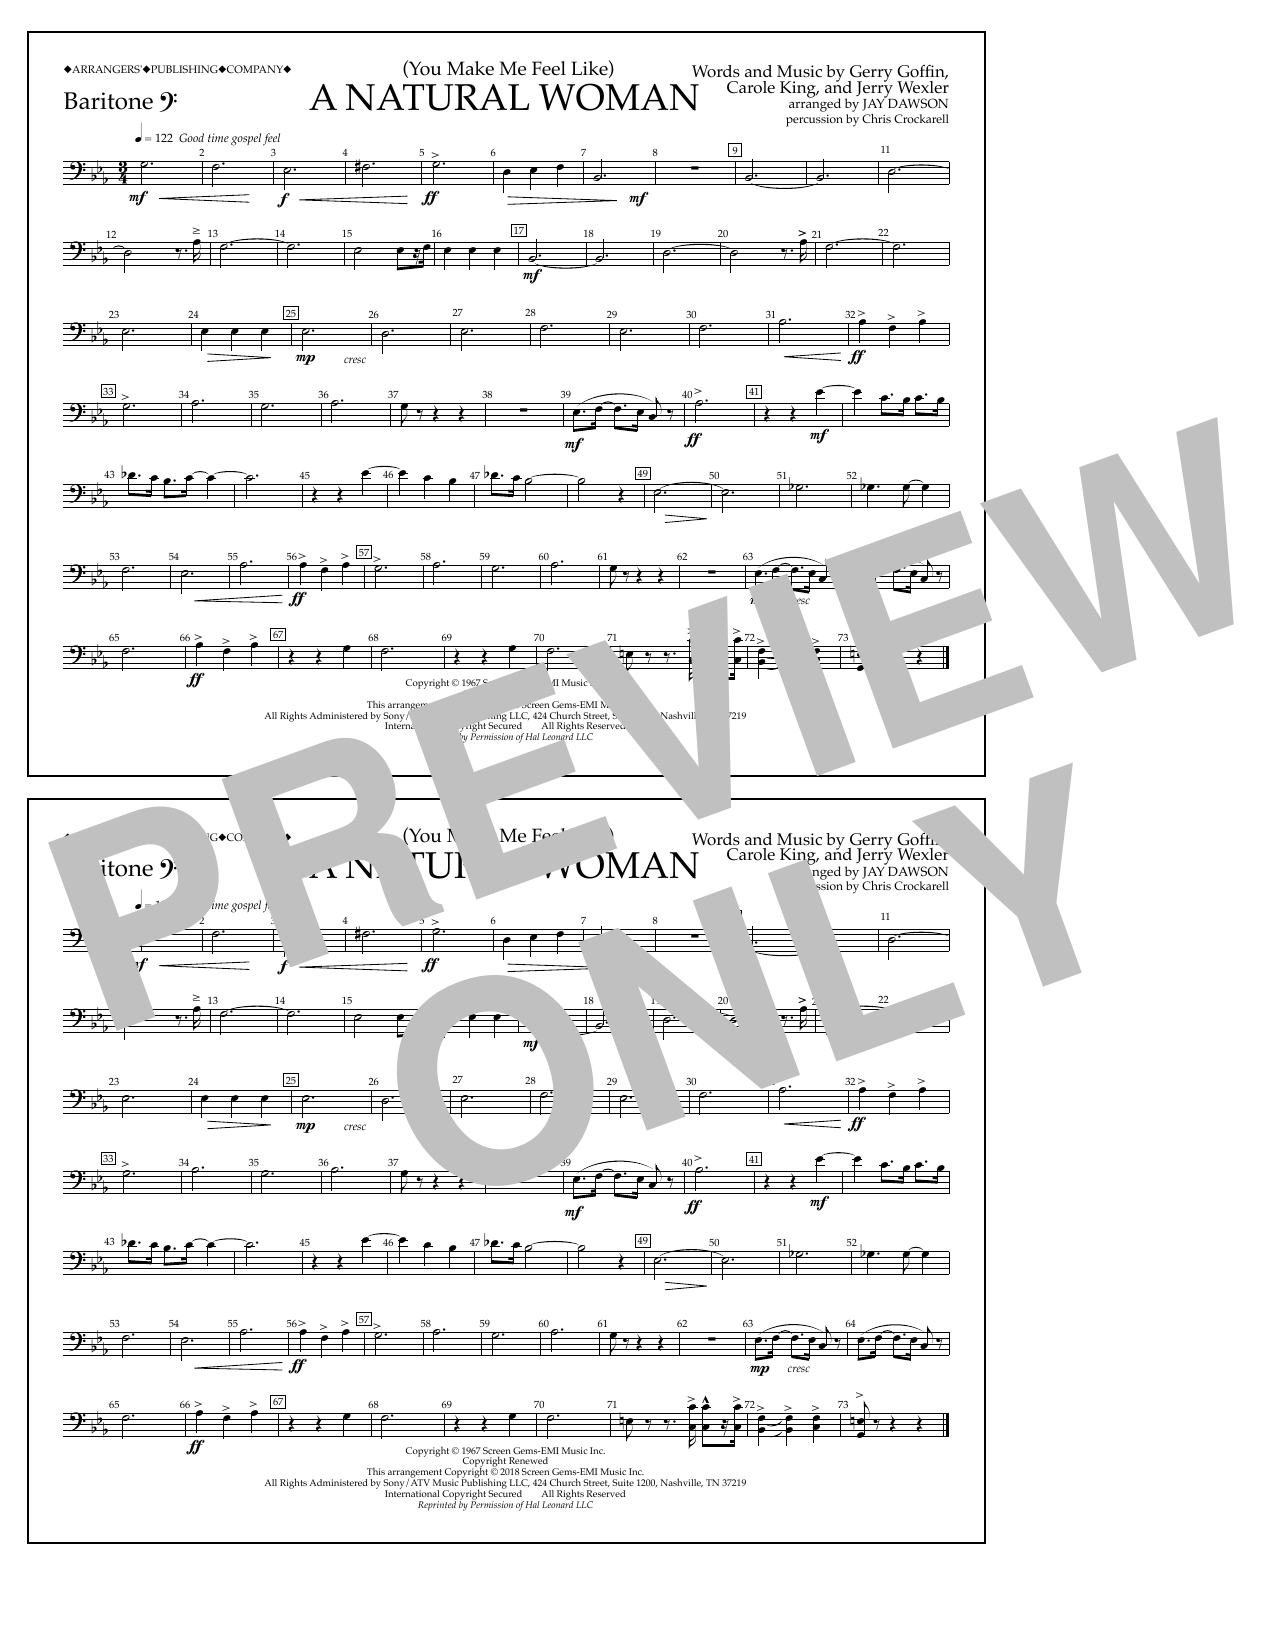 Download Aretha Franklin '(You Make Me Feel Like) A Natural Woman (arr. Jay Dawson) - Baritone B.C.' Digital Sheet Music Notes & Chords and start playing in minutes